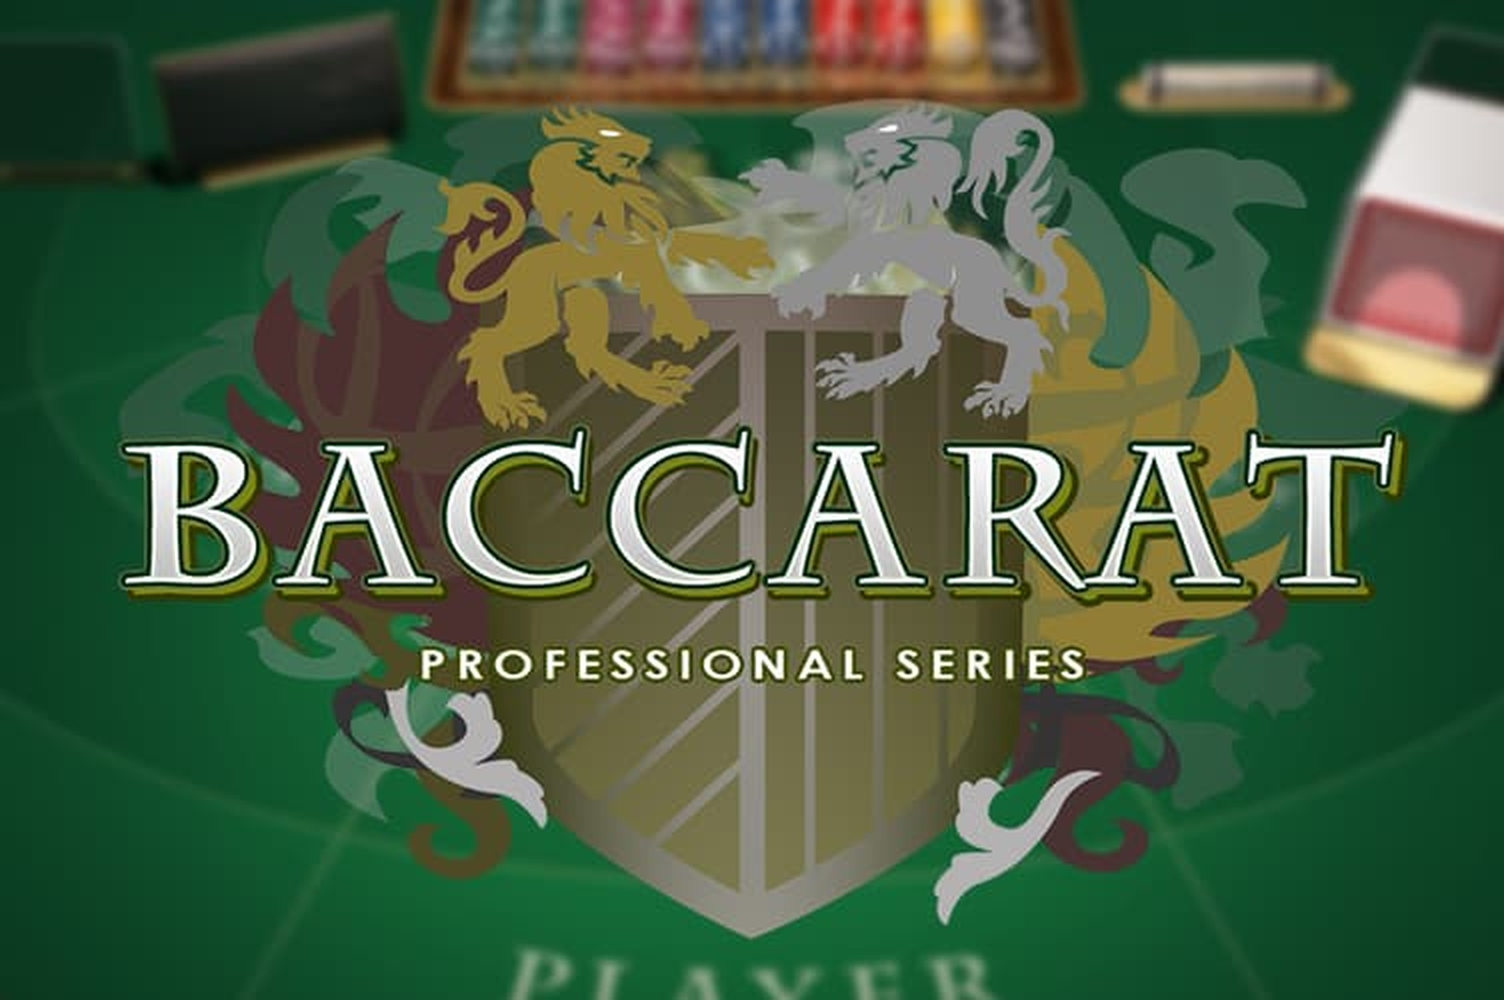 The Baccarat Professional Series Low Limit Online Slot Demo Game by NetEnt